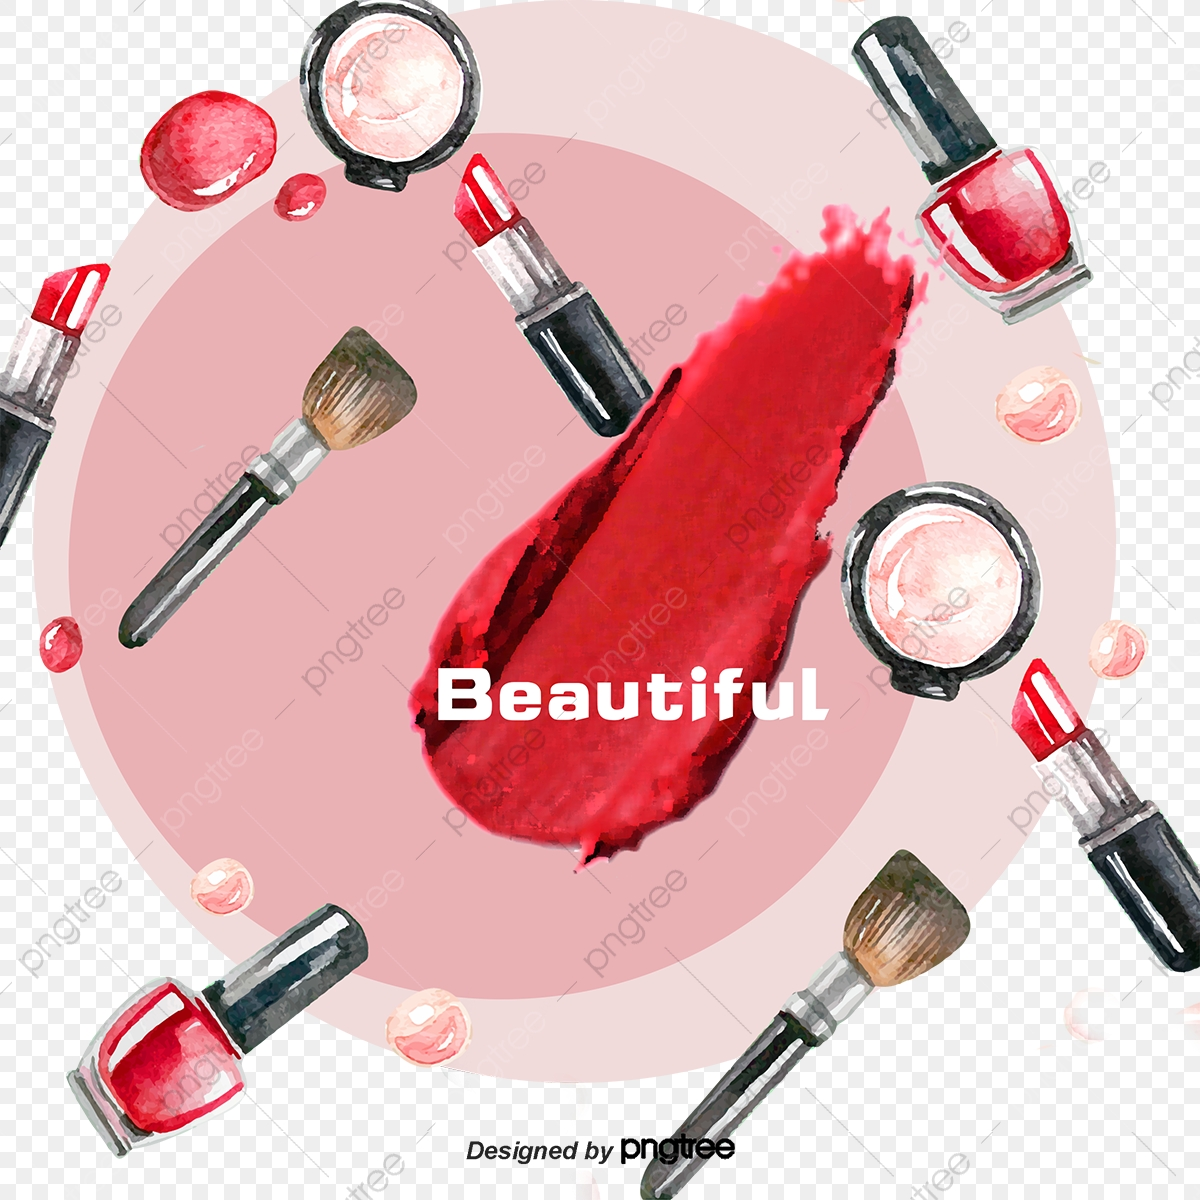 Cosmetics Background, Cosmetic, Creative Background, Pink PNG.